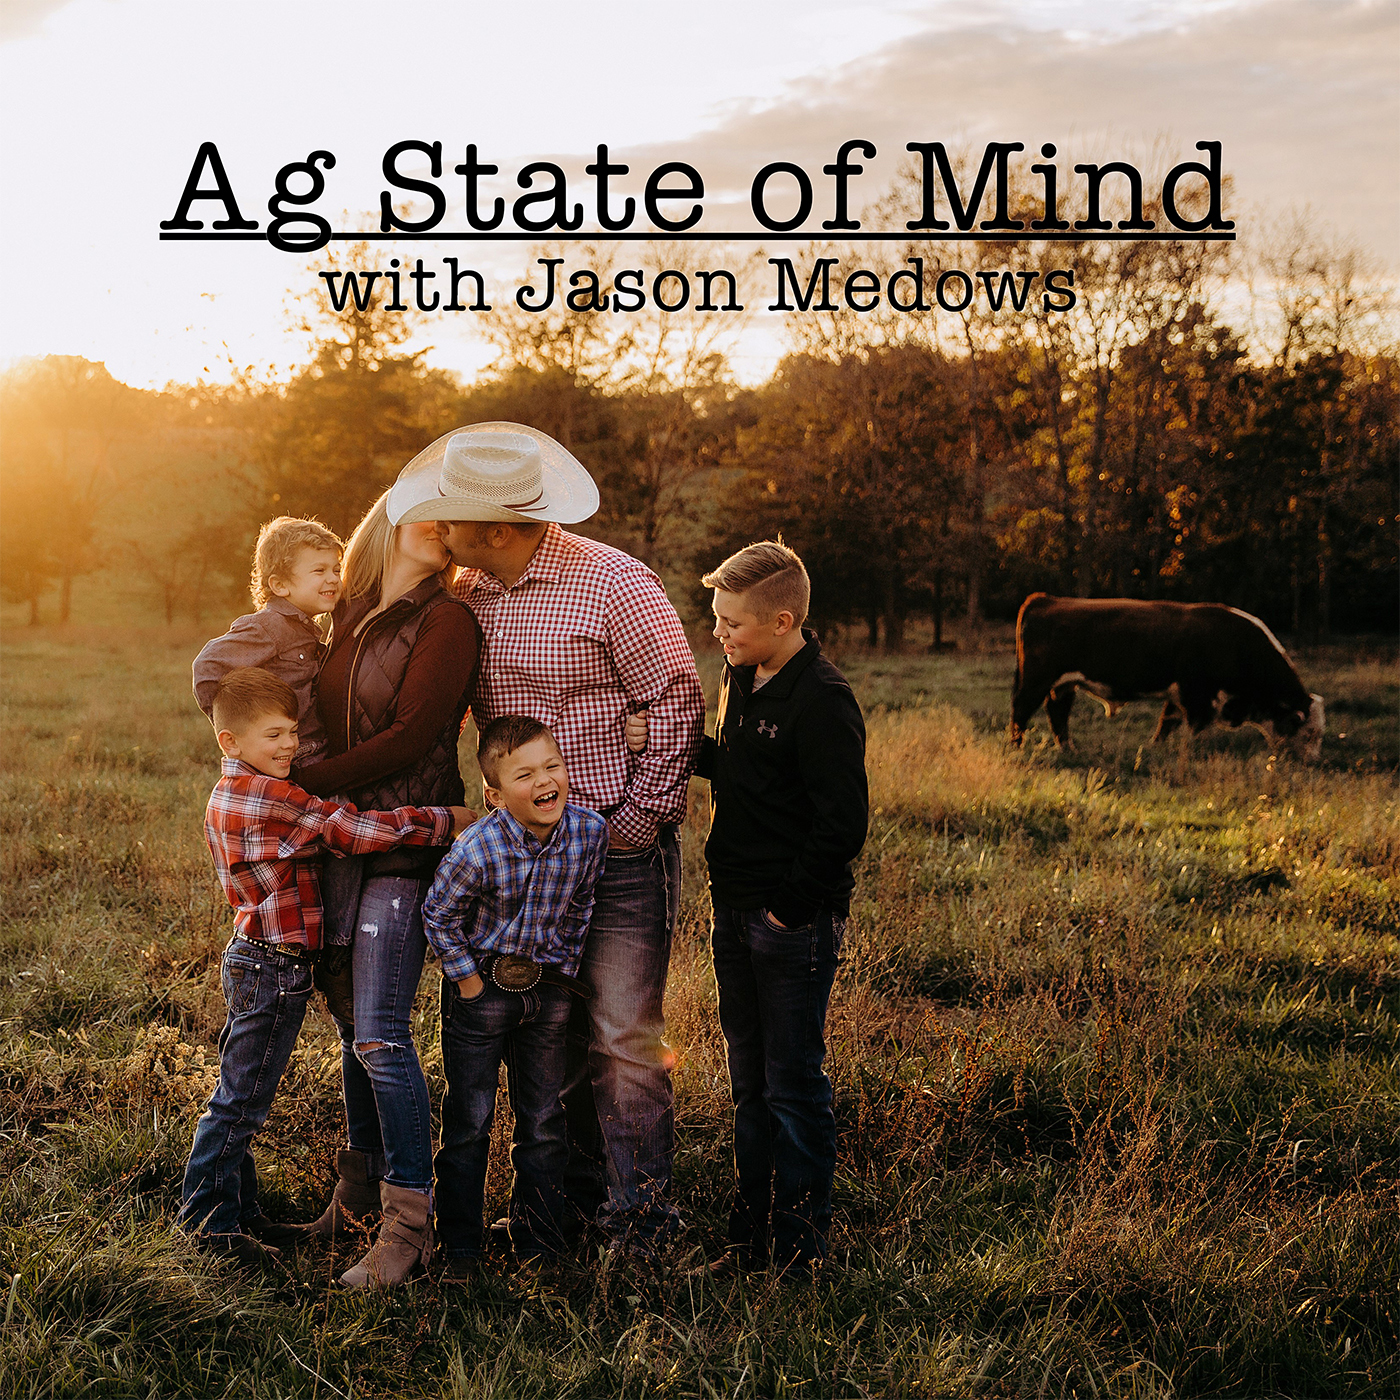 Ag State of Mind with Jason Medows